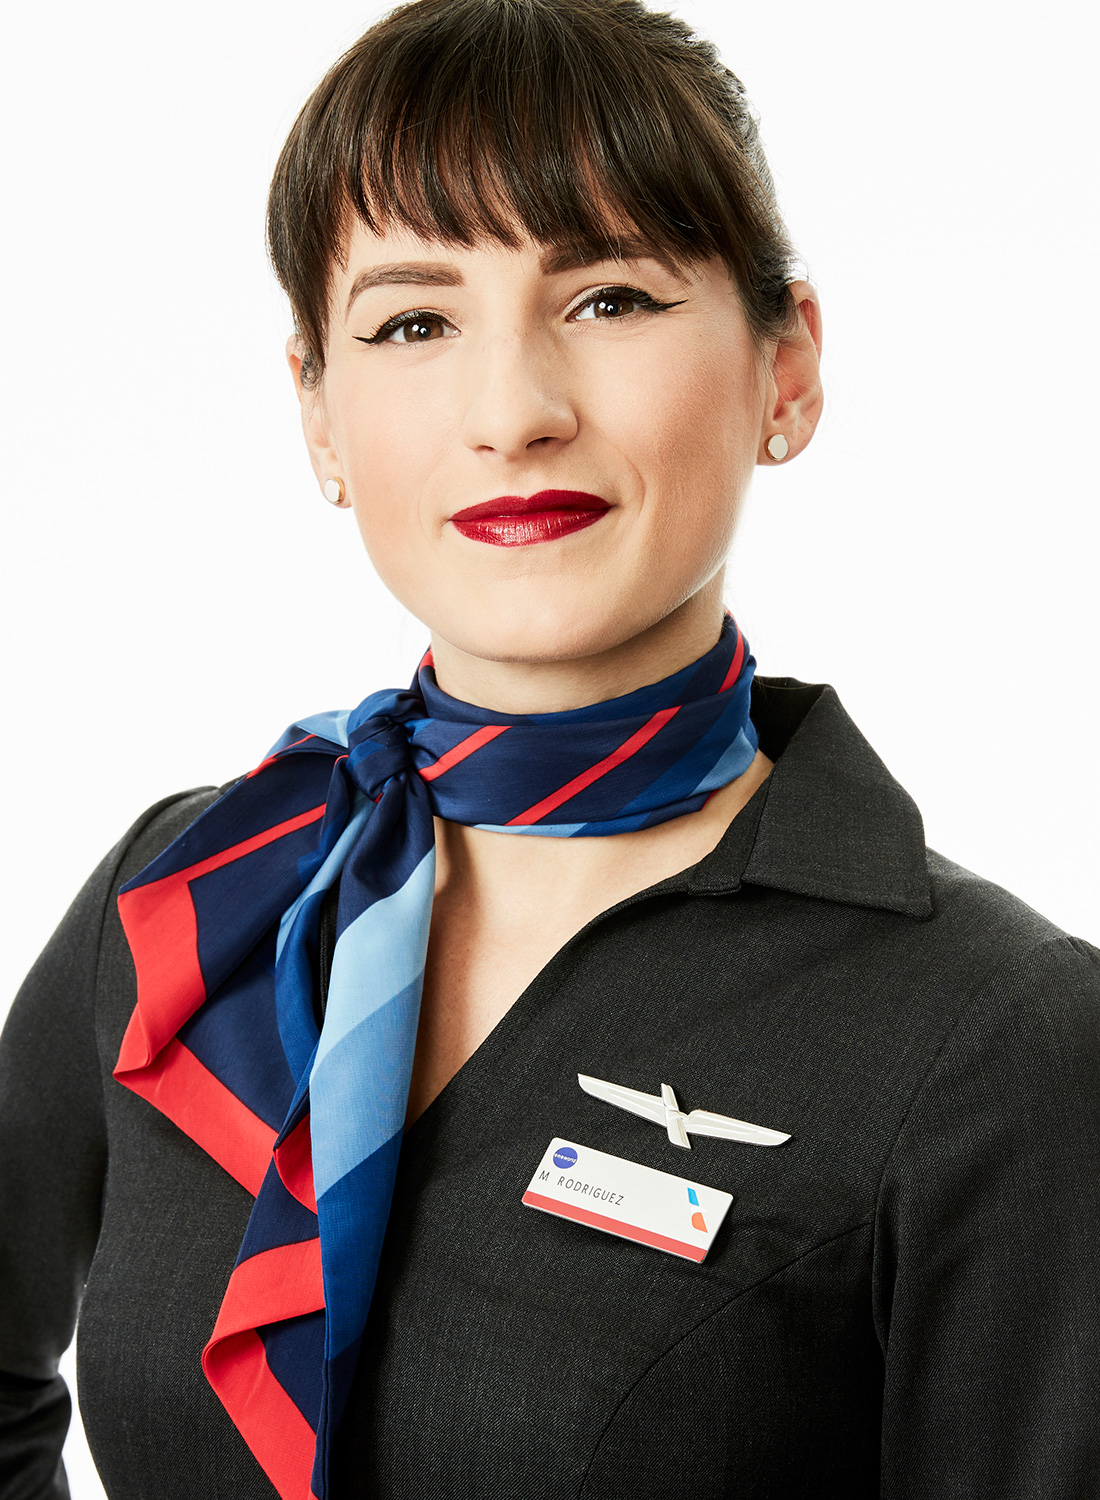 160920_AmericanAirlines_Portraits_By_BriJohnson_0012.jpg